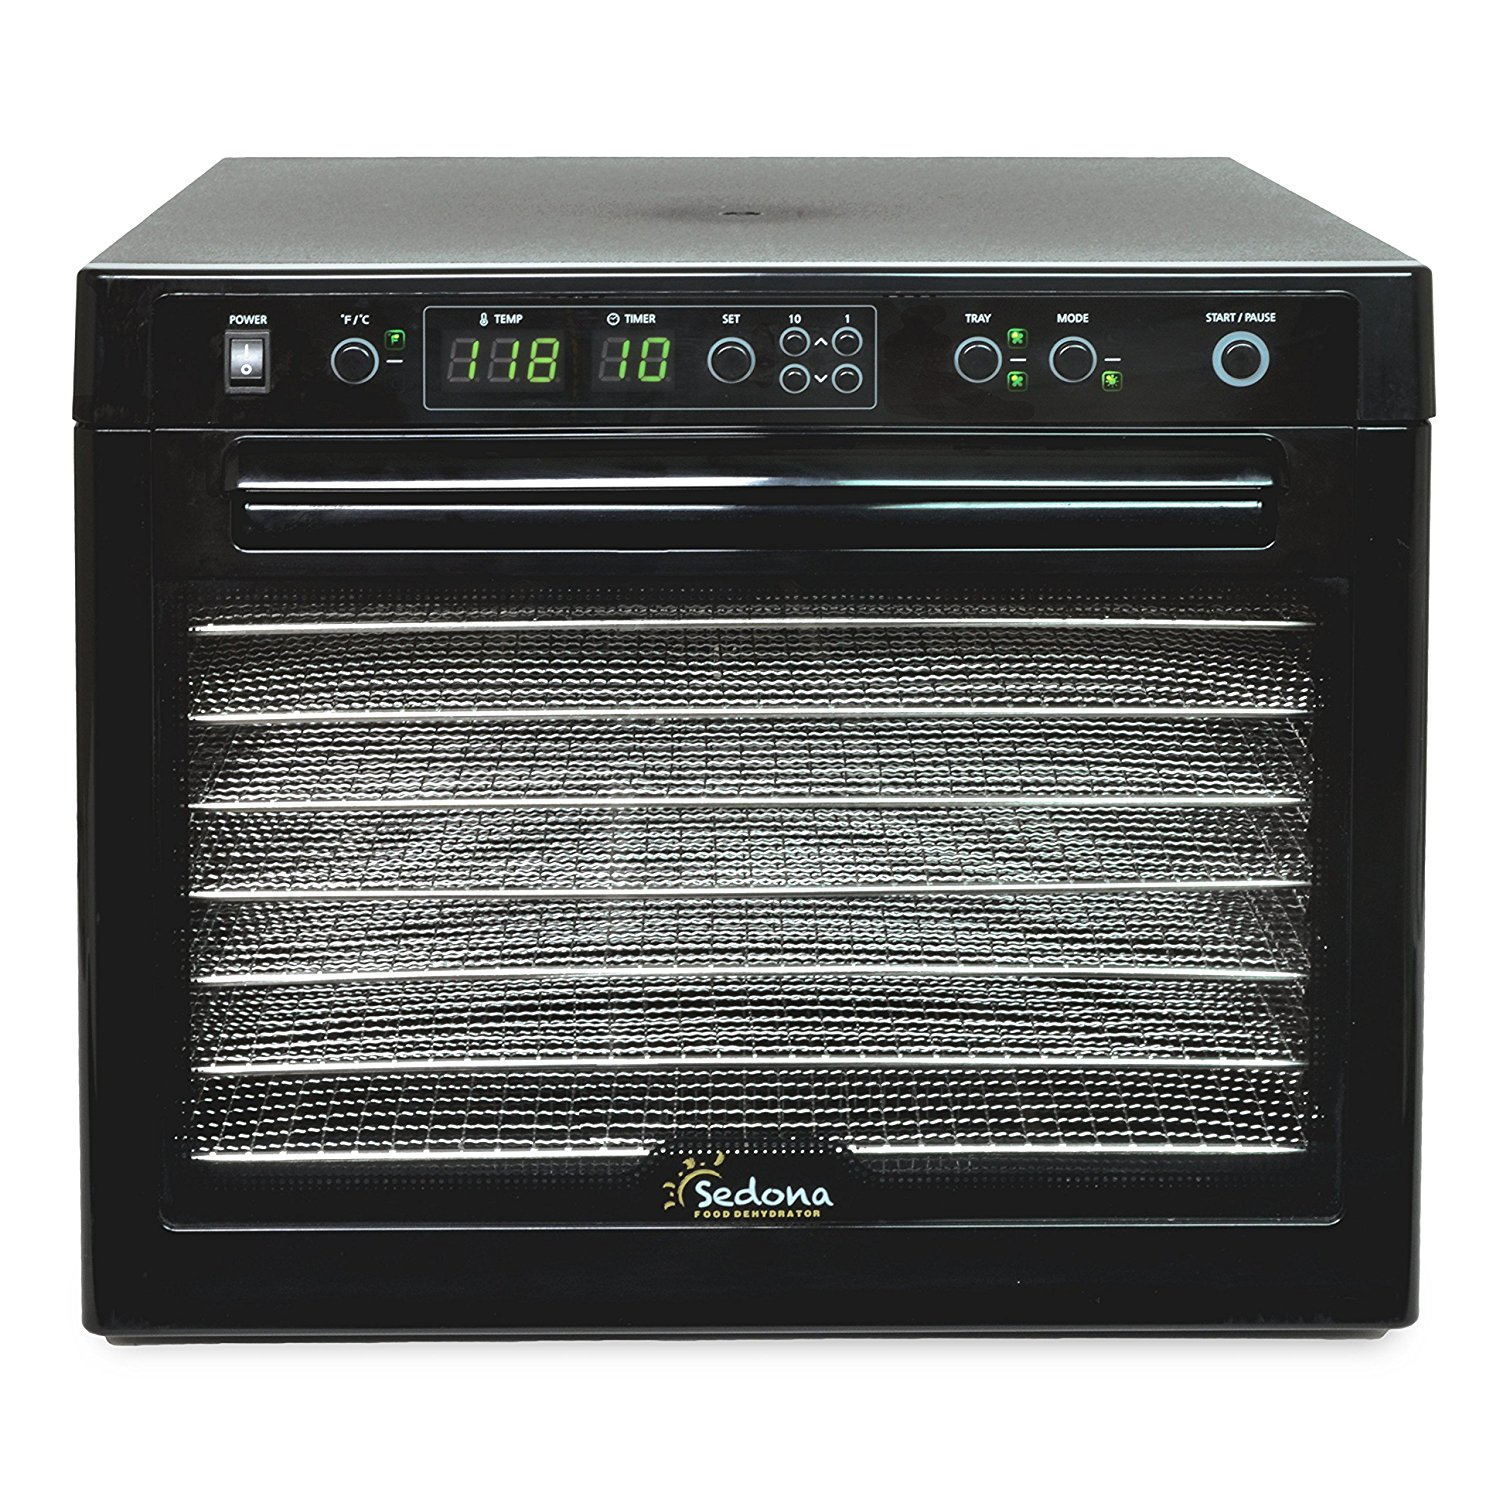 Tribest Sedona Digitally Controlled Food Dehydrator SD-S9000